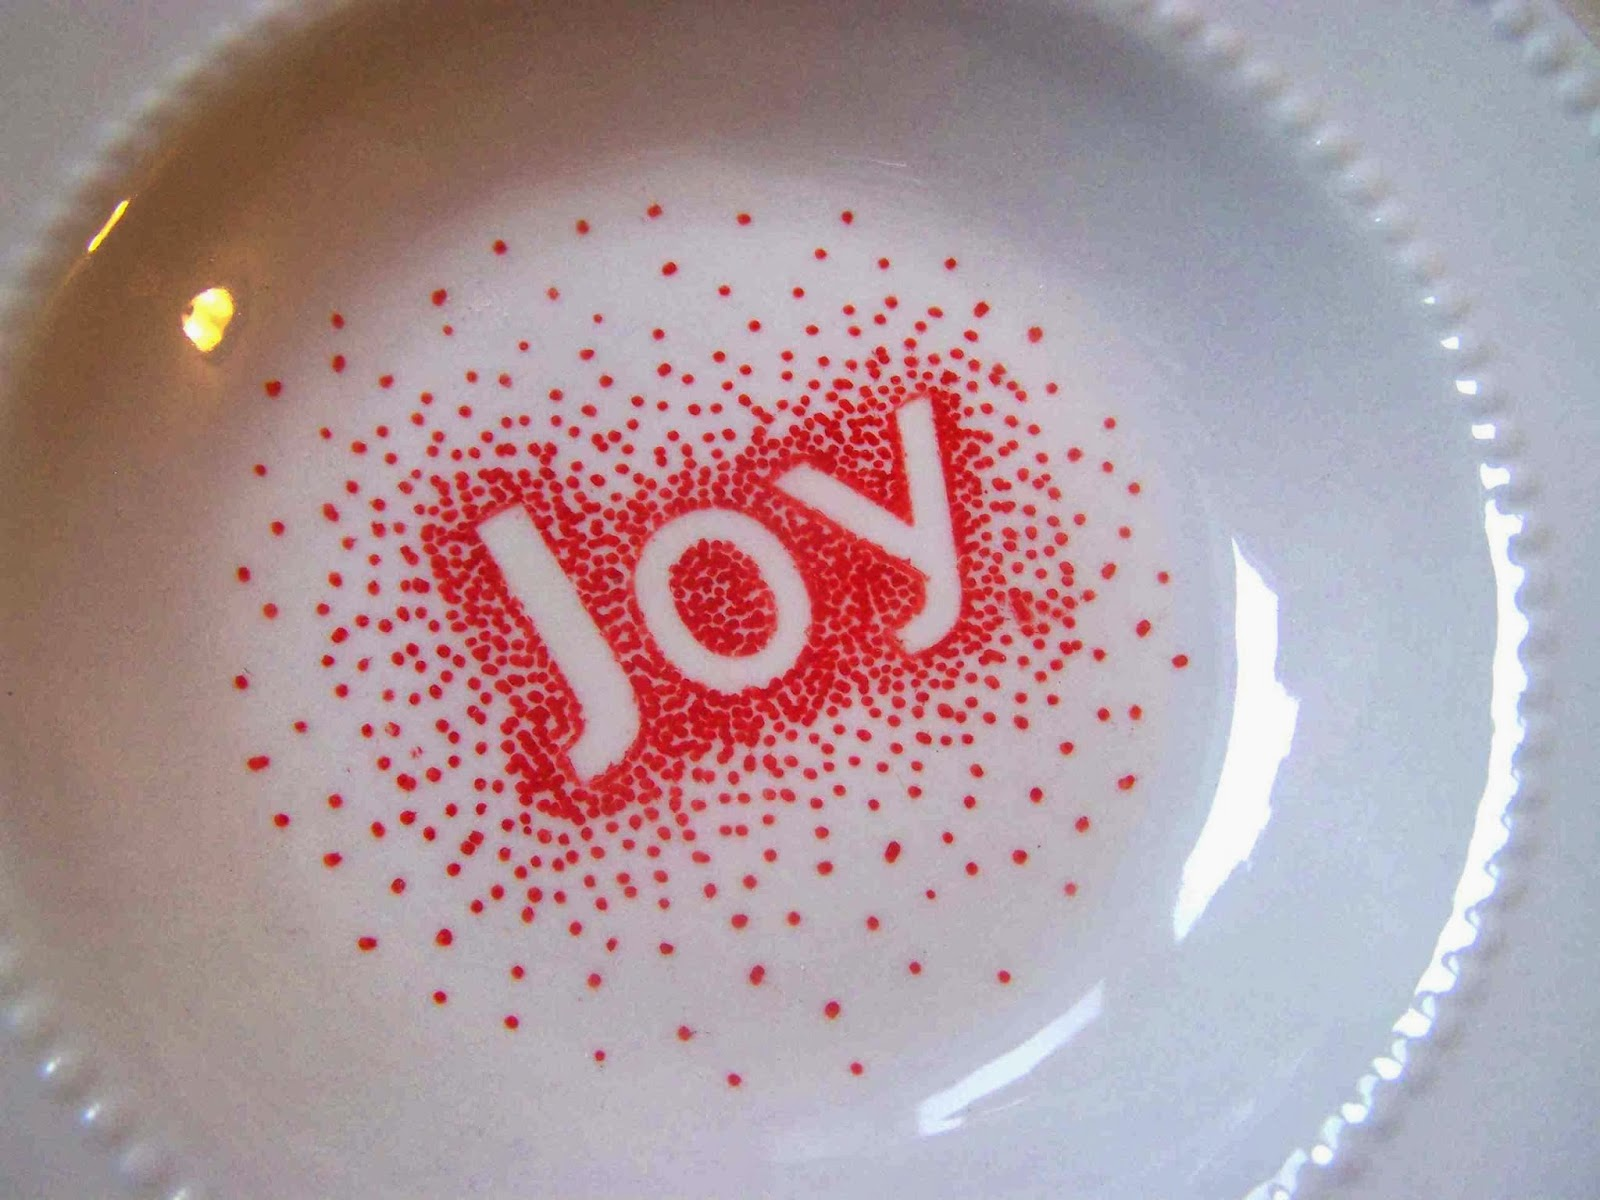 I picked up some alphabet stickers at the dollar store and they were really fun to use. Place the stickers where you want the start adding dots close ... & Made by Me. Shared with you.: Sharpie Decorated Plates and Mugs